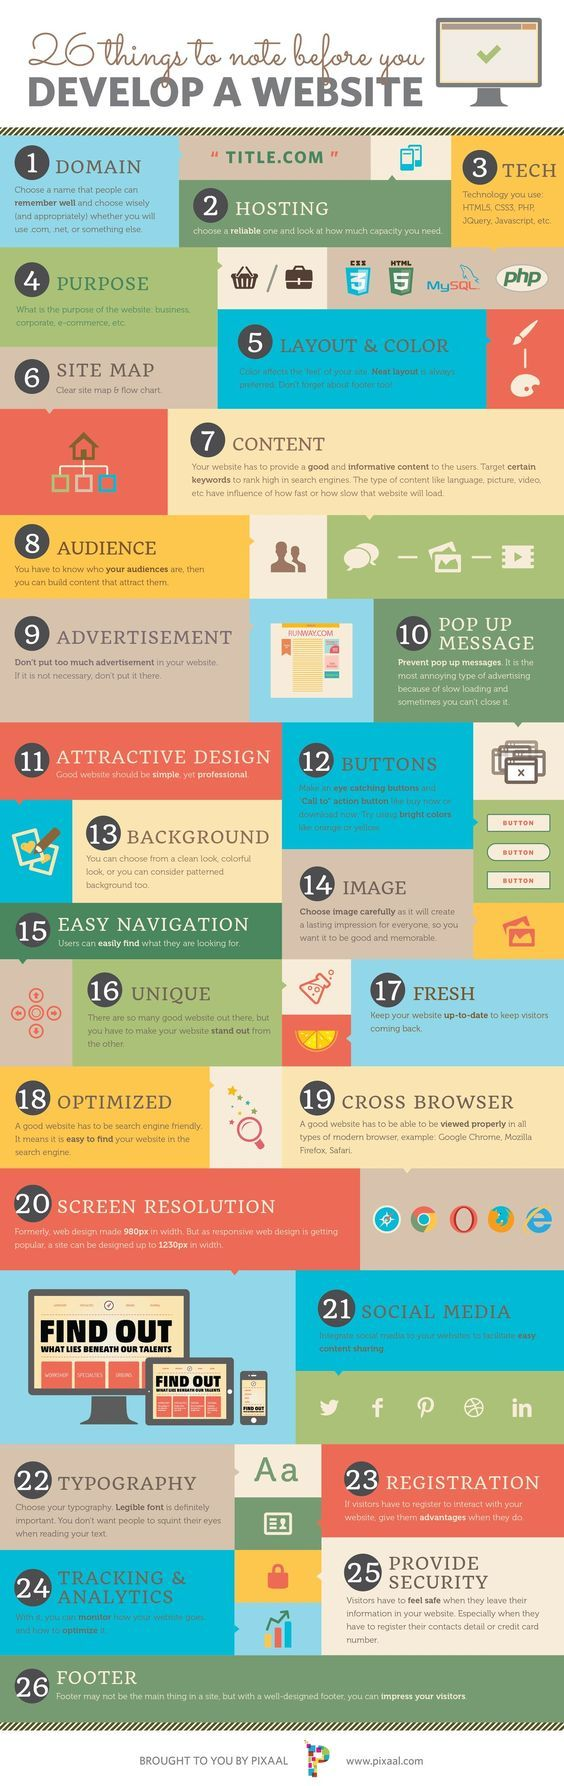 Smo Services In Winnipeg Web Design Tips Web Design Website Development